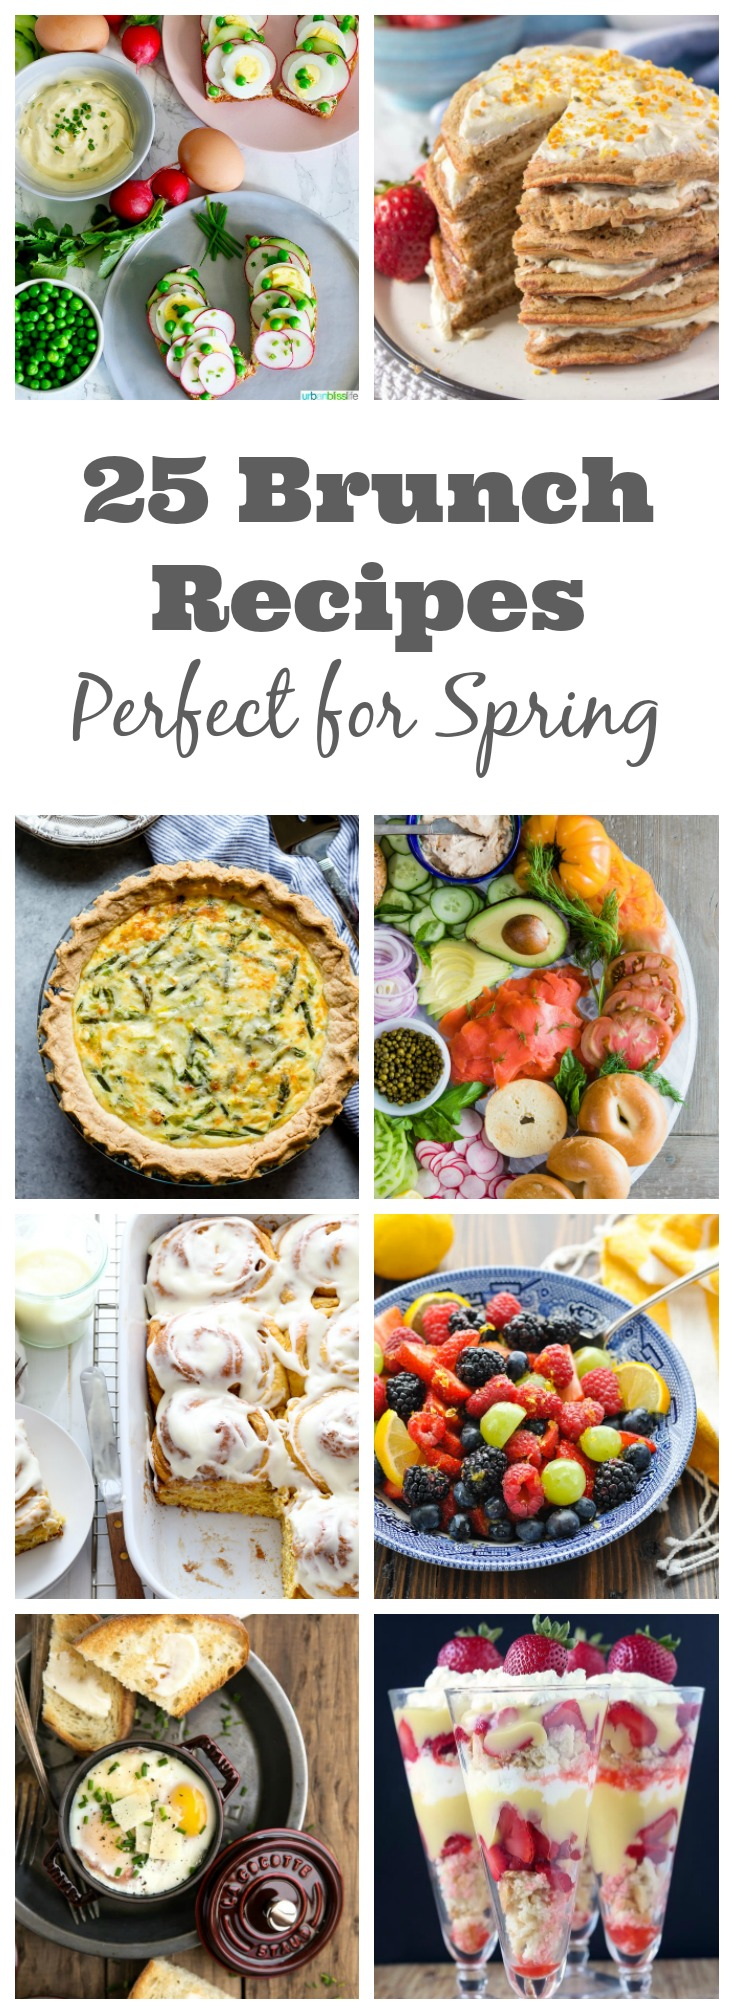 25 Brunch Recipes Perfect for Spring - Spring has so many fantastic brunch opportunities.  Easter, Mother's Day, Bridal Showers, Baby Showers - or just a regular Sunday Brunch. I've rounded up some of the best brunch recipes for Spring!